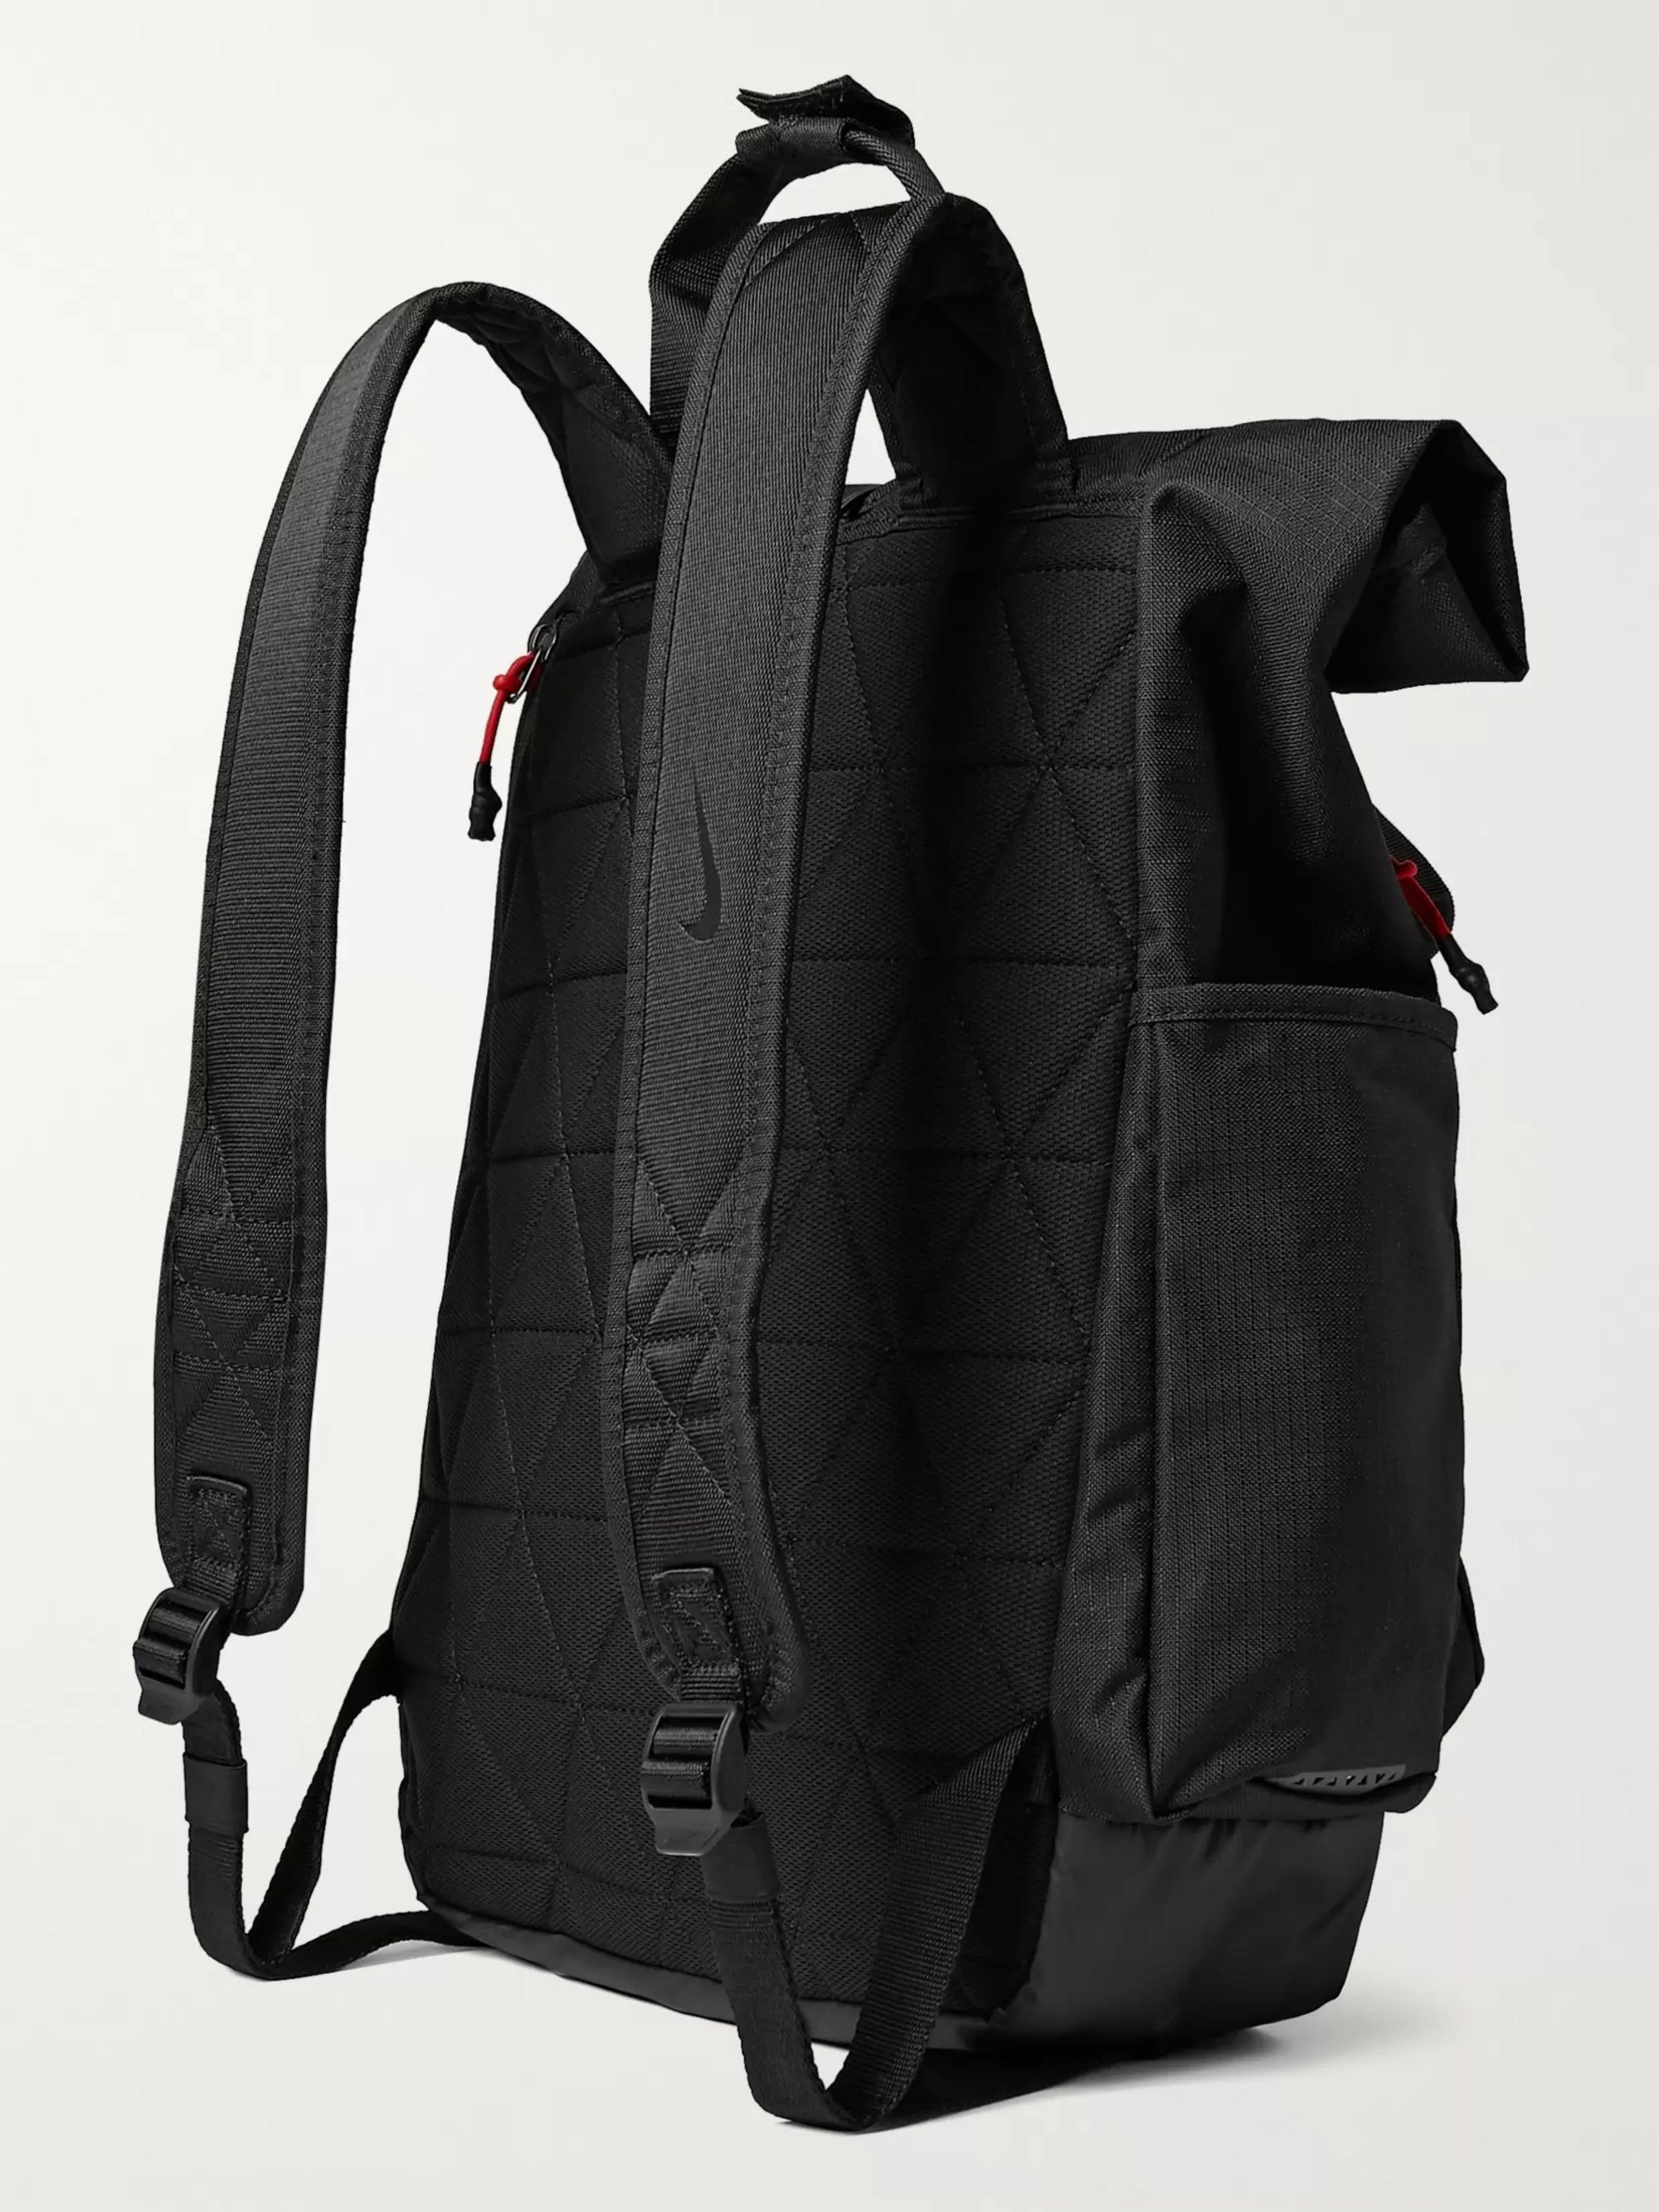 Nike Golf Ripstop Backpack